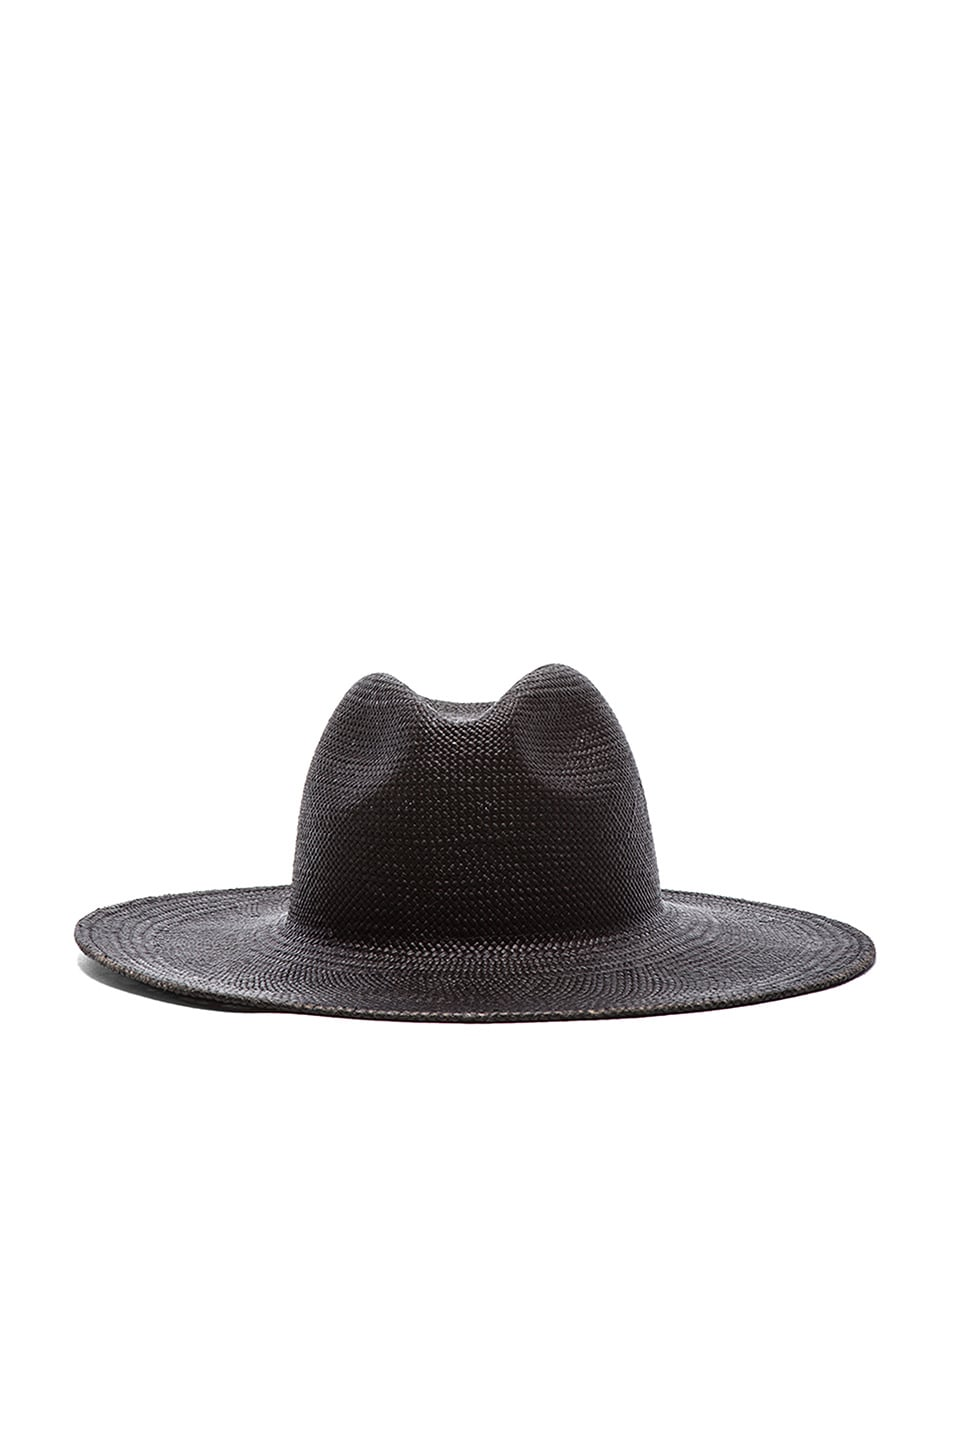 Image 1 of Janessa Leone Rita Straw Hat in Black